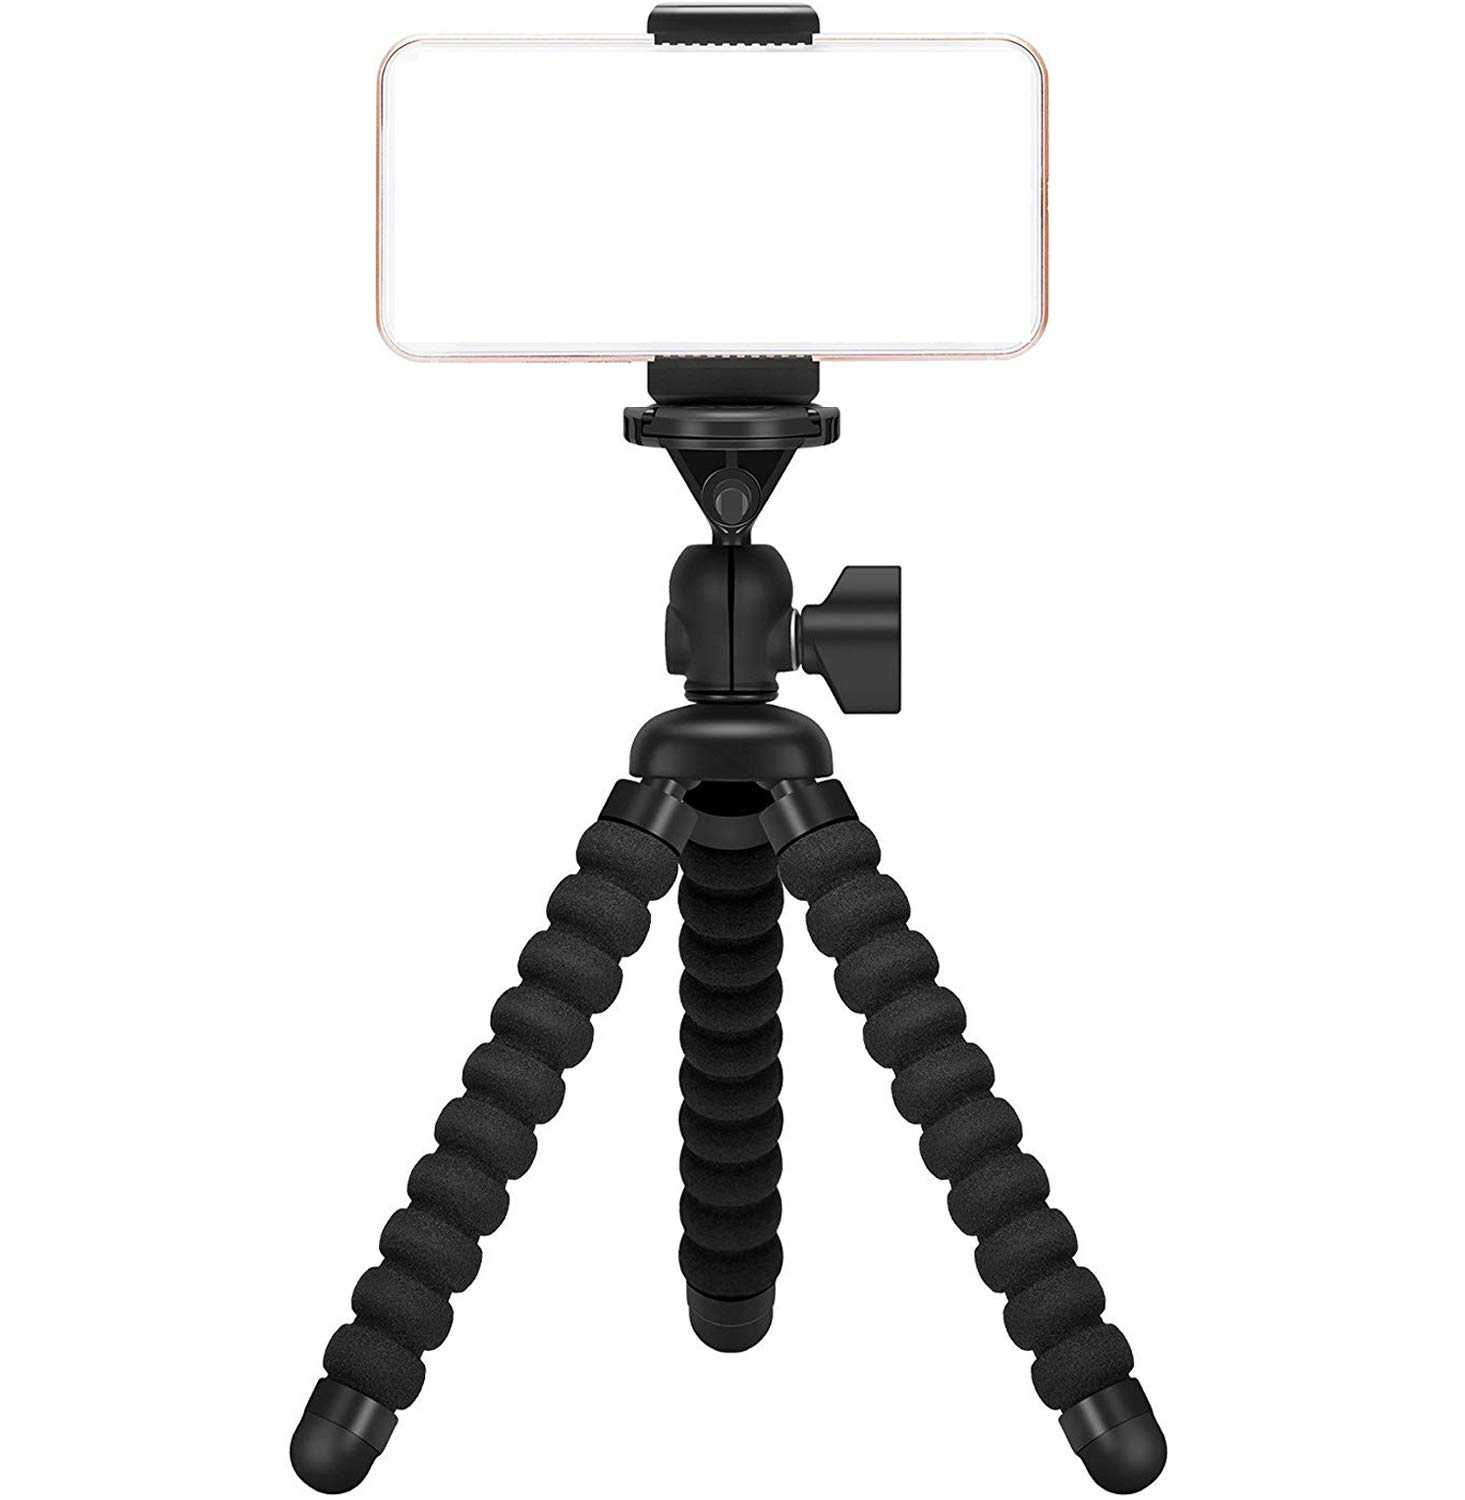 iPhone 11 tripod